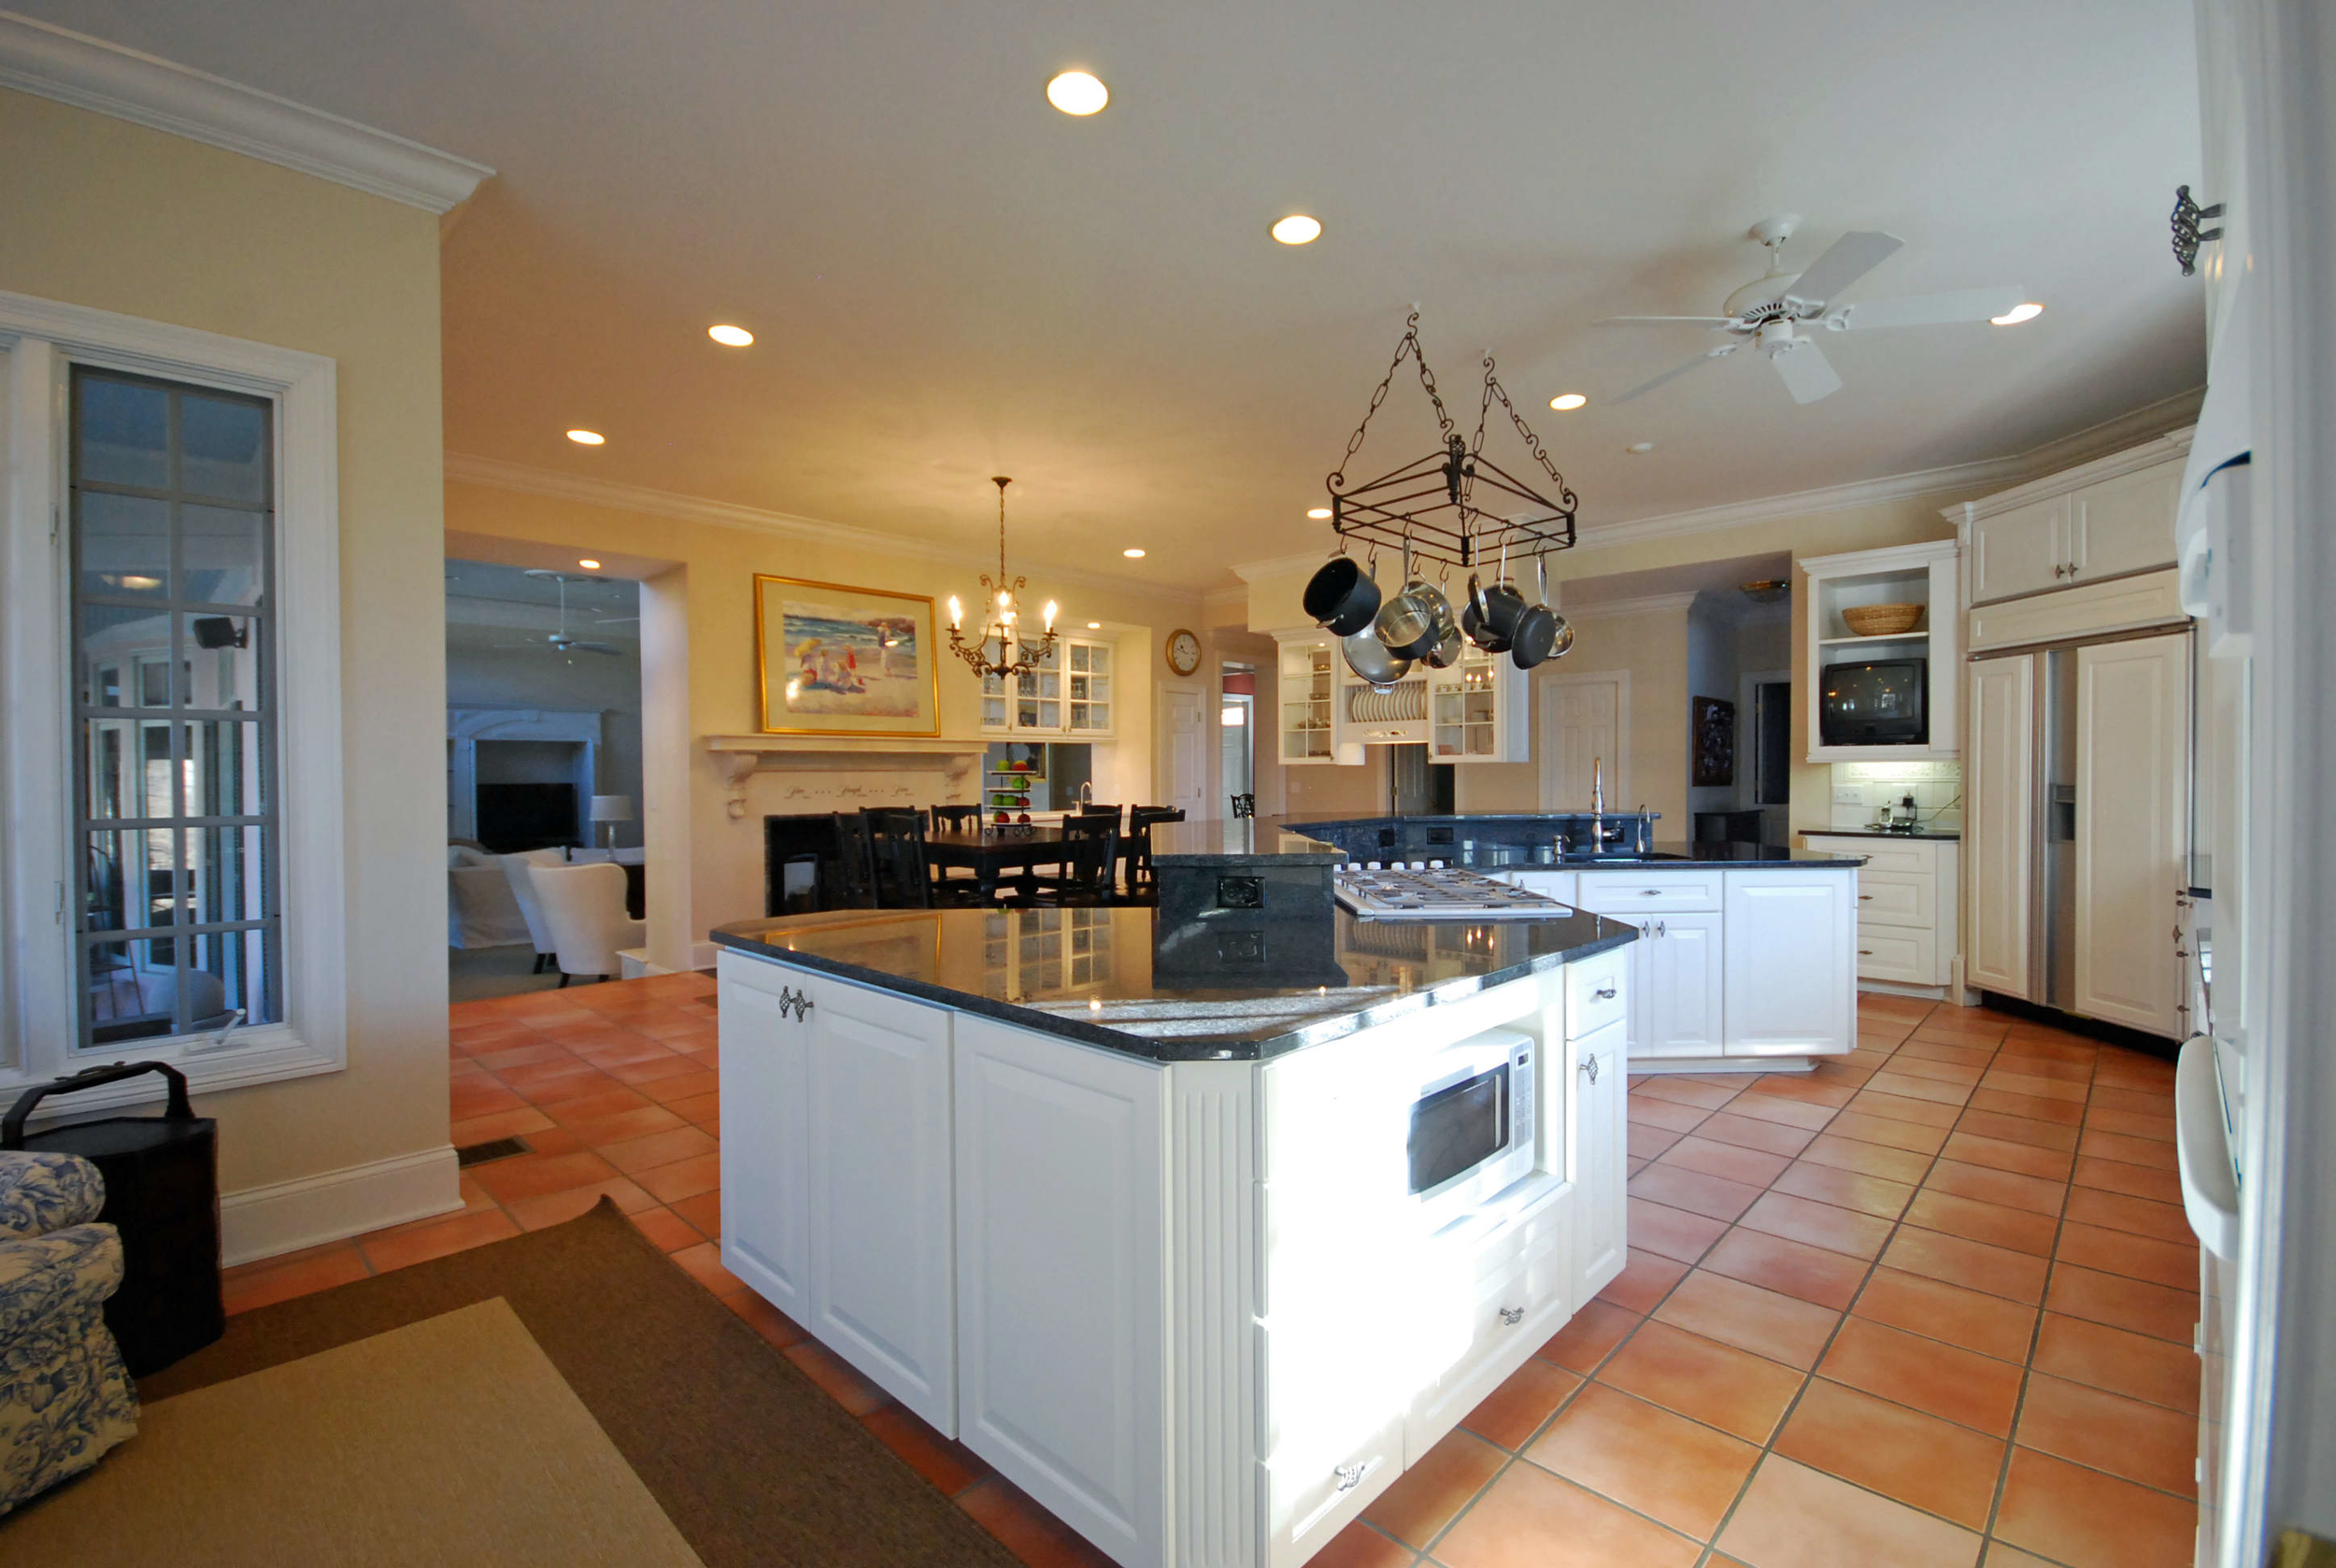 This ginormous, sexy kitchen was inside the spectacular house in Glendale Ohio, sold by our  DIGS Group at Comey and Shepherd Realtors sold it